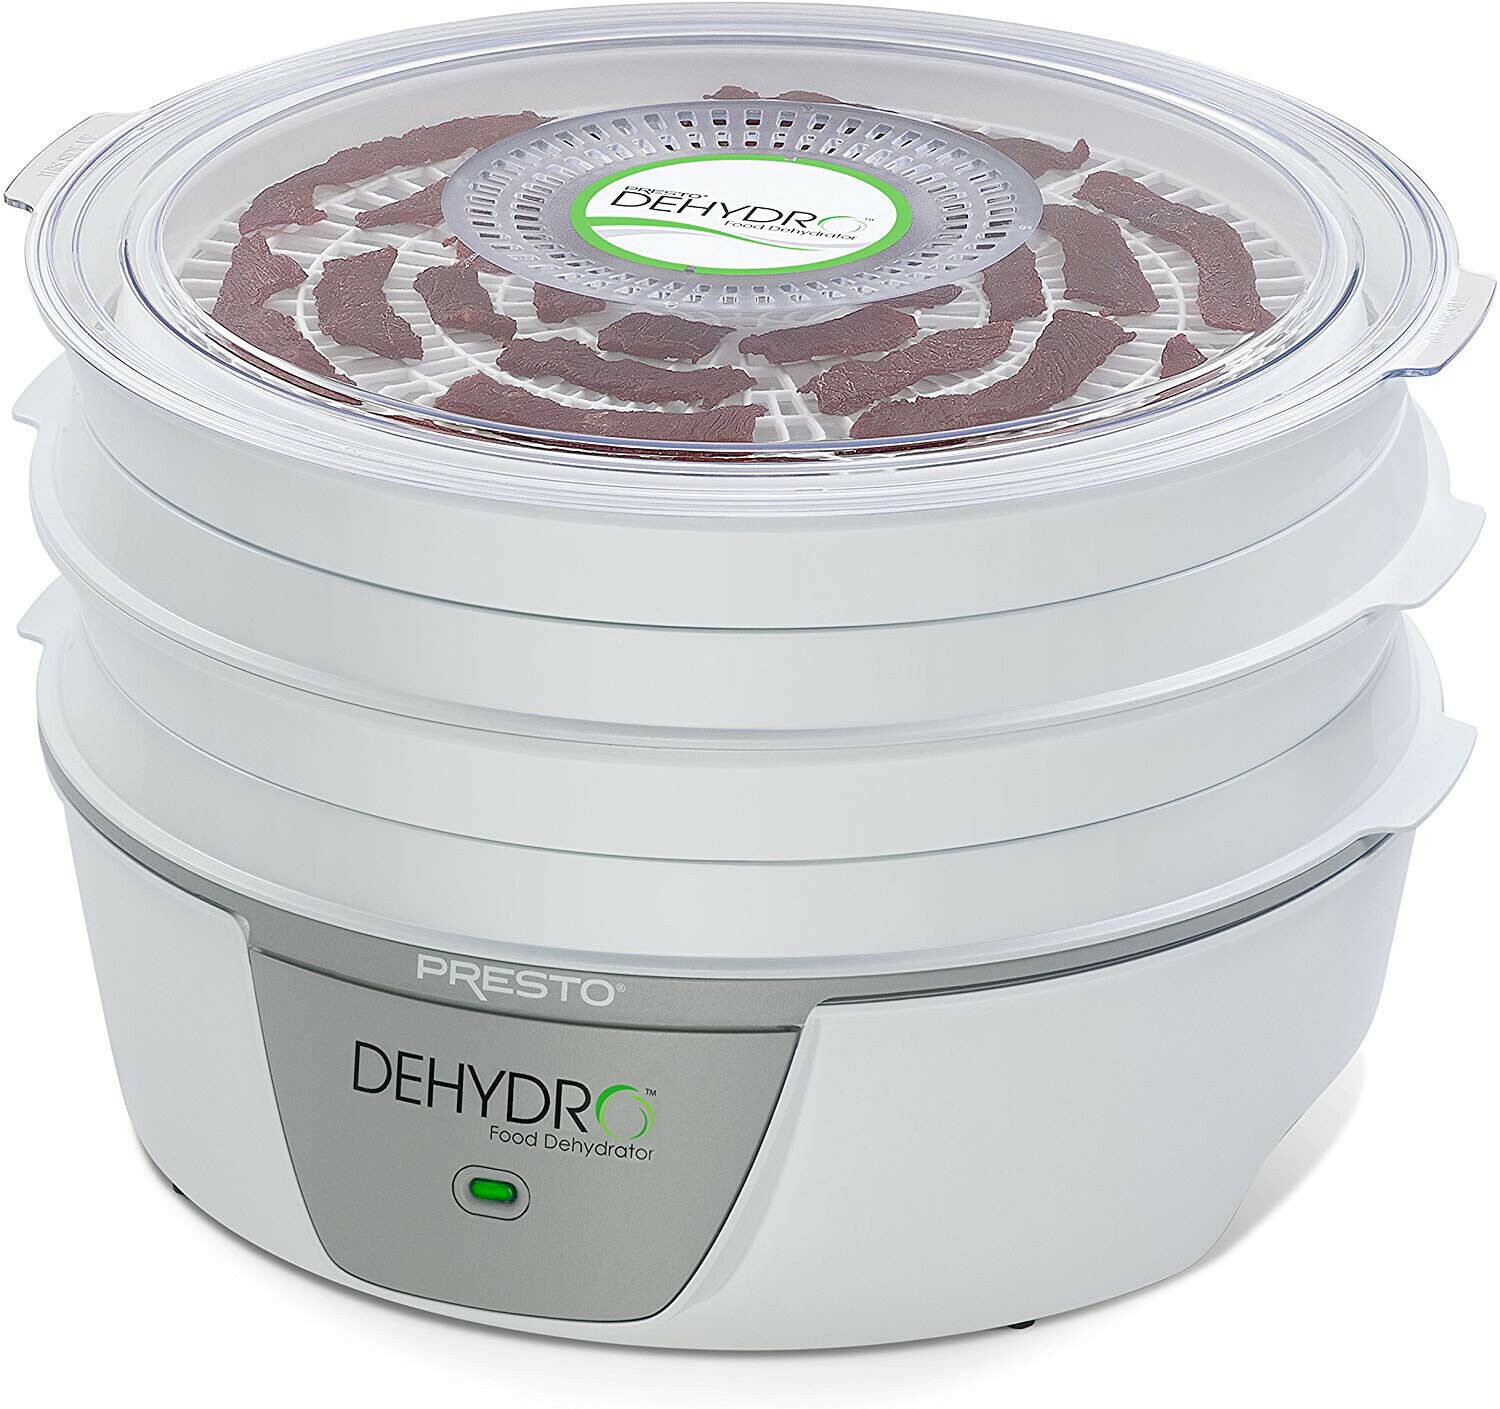 Presto 06300 Dehydro Electric Food Dehydrator New Free Shipp